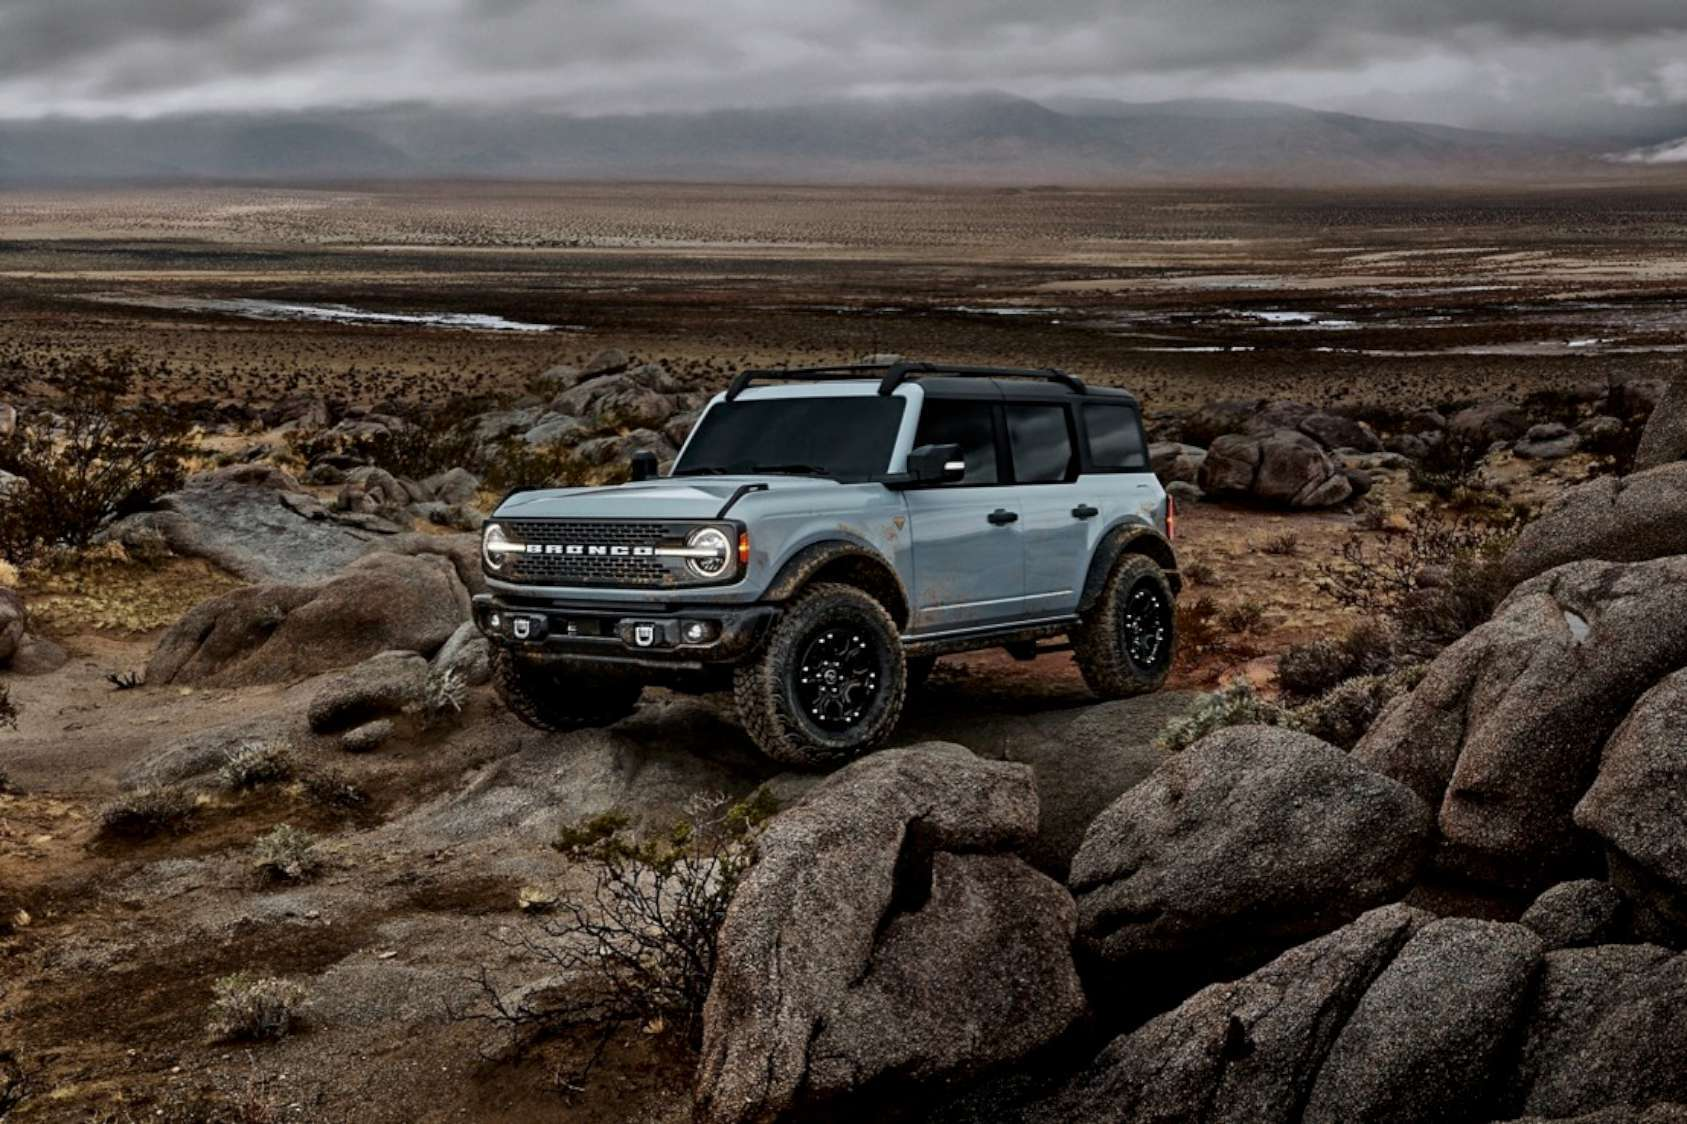 Ford Bronco 2021 Price And Review - Likeeed